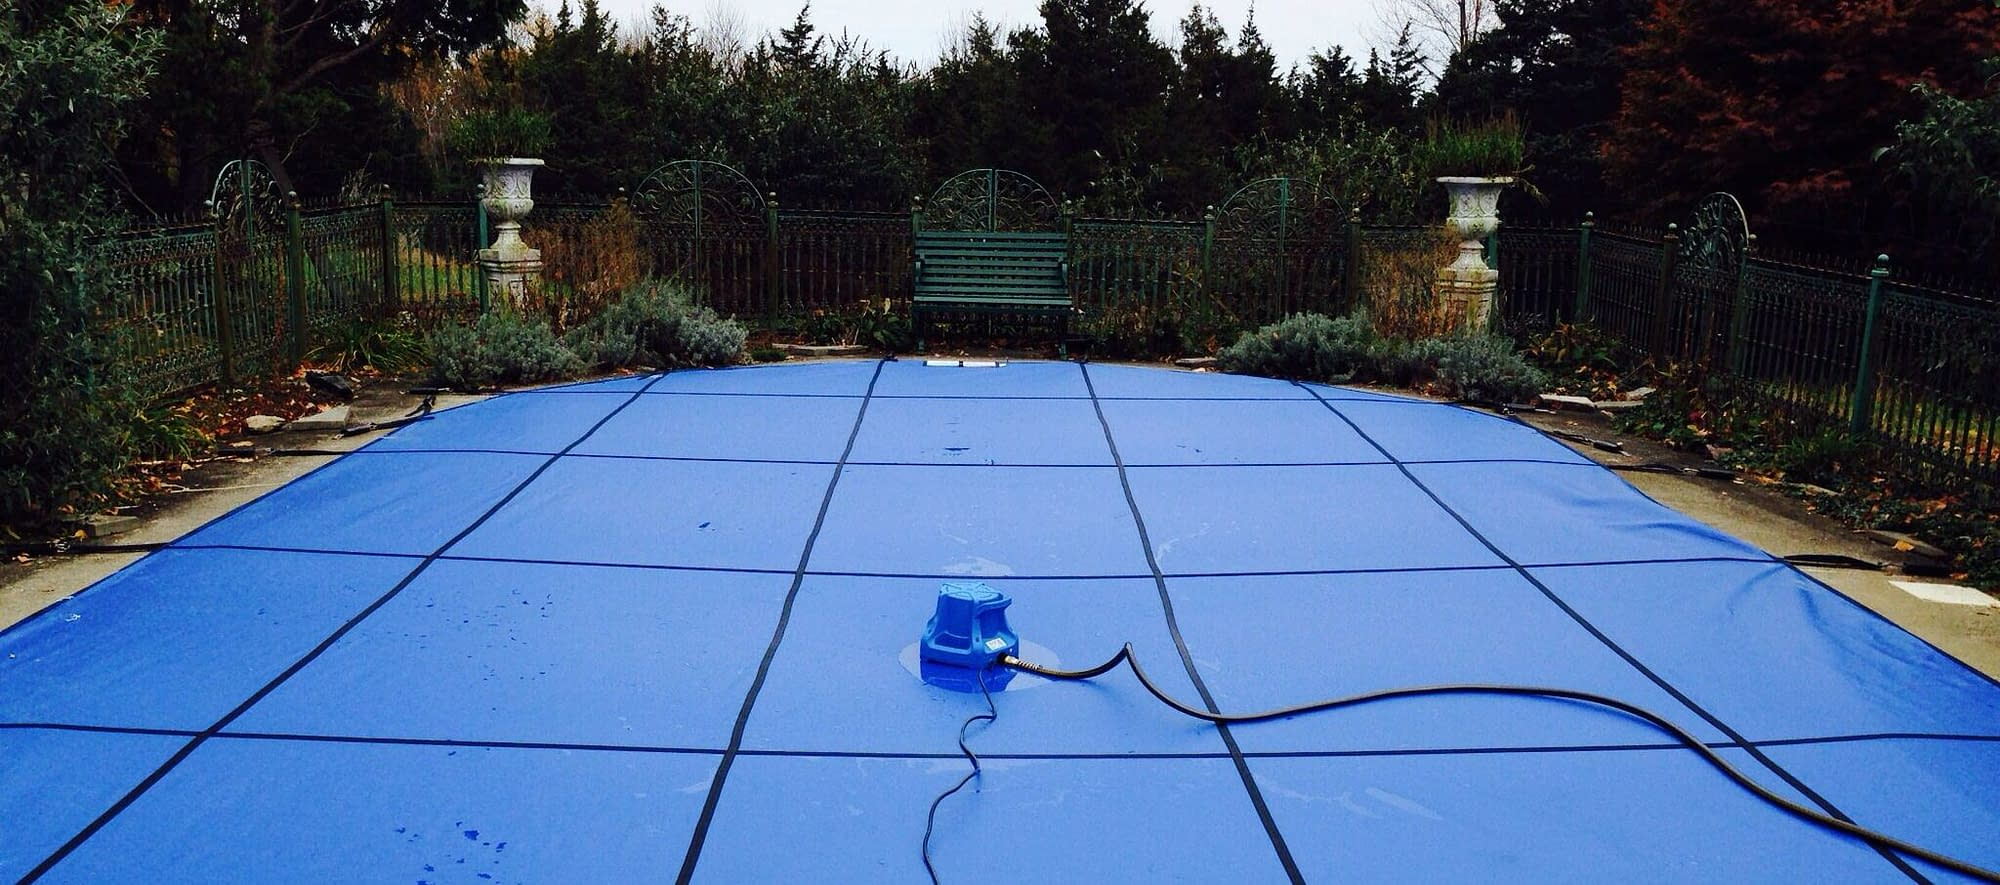 Best Pool Cover Pumps - Product Reviews and Buyer's Guide 1